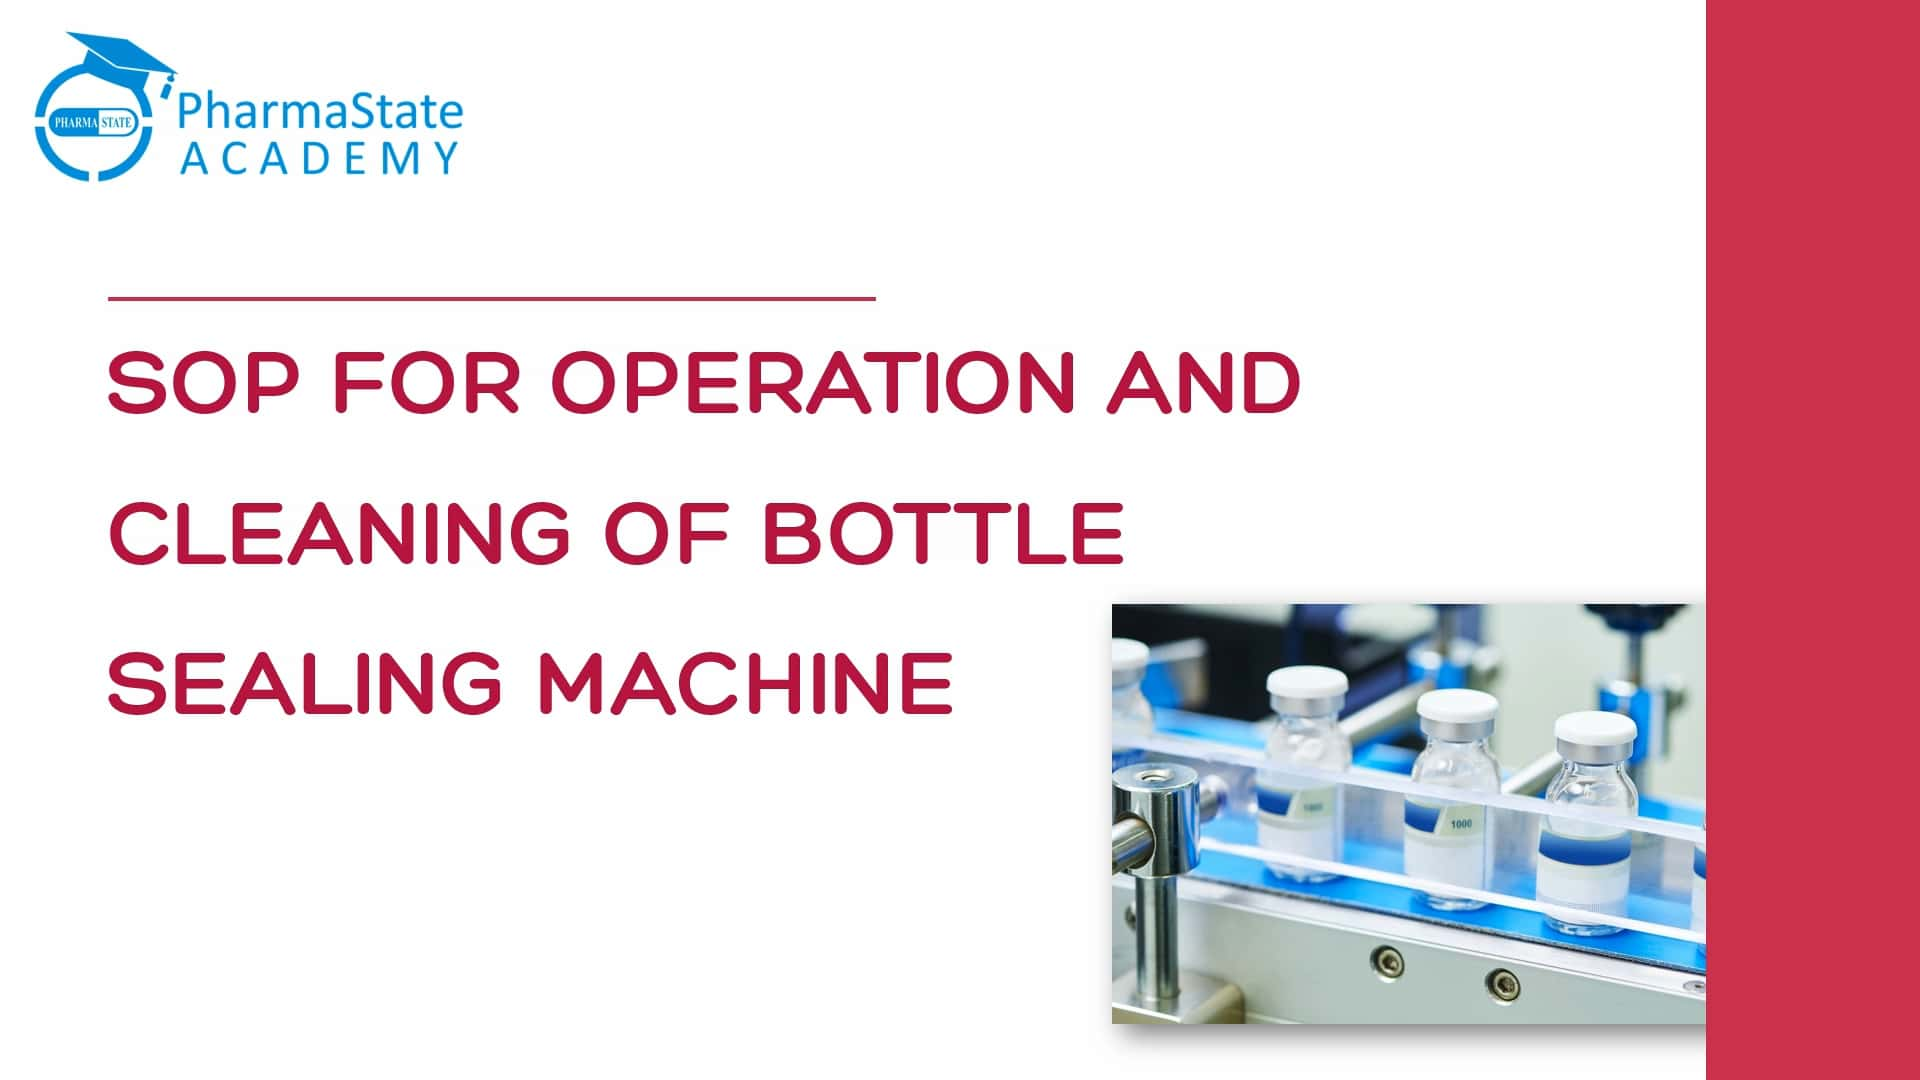 SOP For Operation And Cleaning of Bottle Sealing Machine